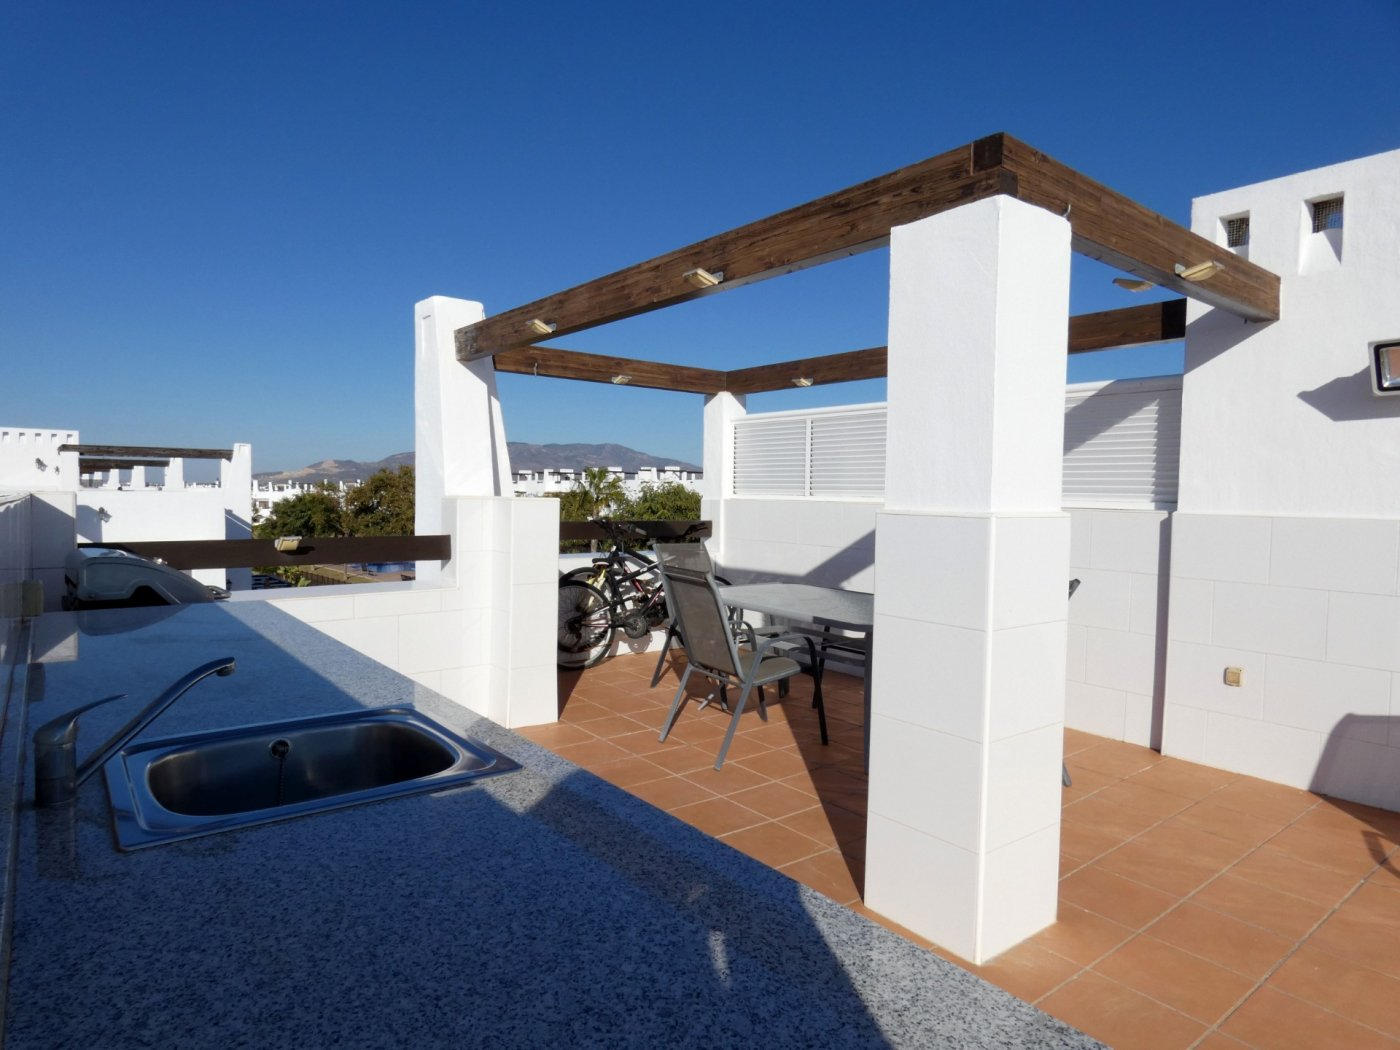 Gallery Image 25 of Sunny 2 Bed Apartment on a Cosy Corner Plot with Stunning Lemon Grove Views and Communal Pool